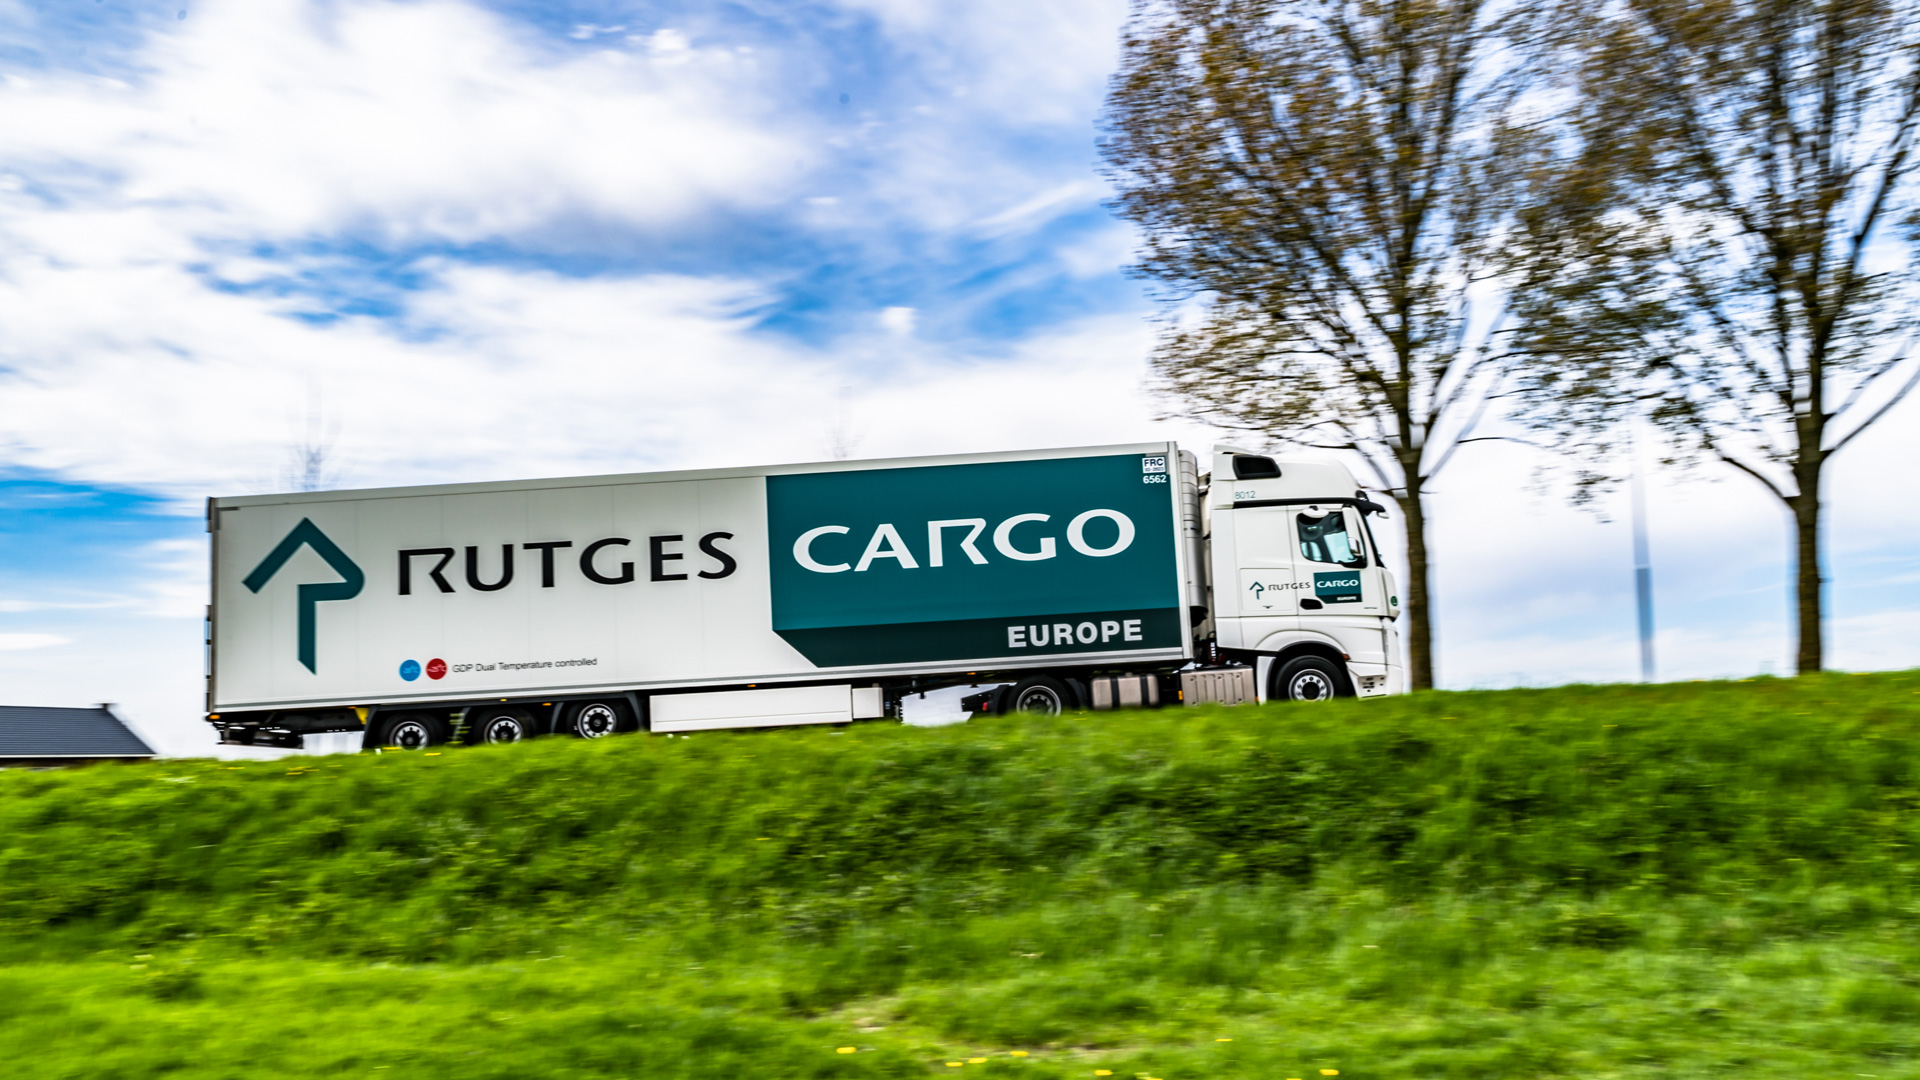 High Value Transport - Rutges Cargo Europe BV